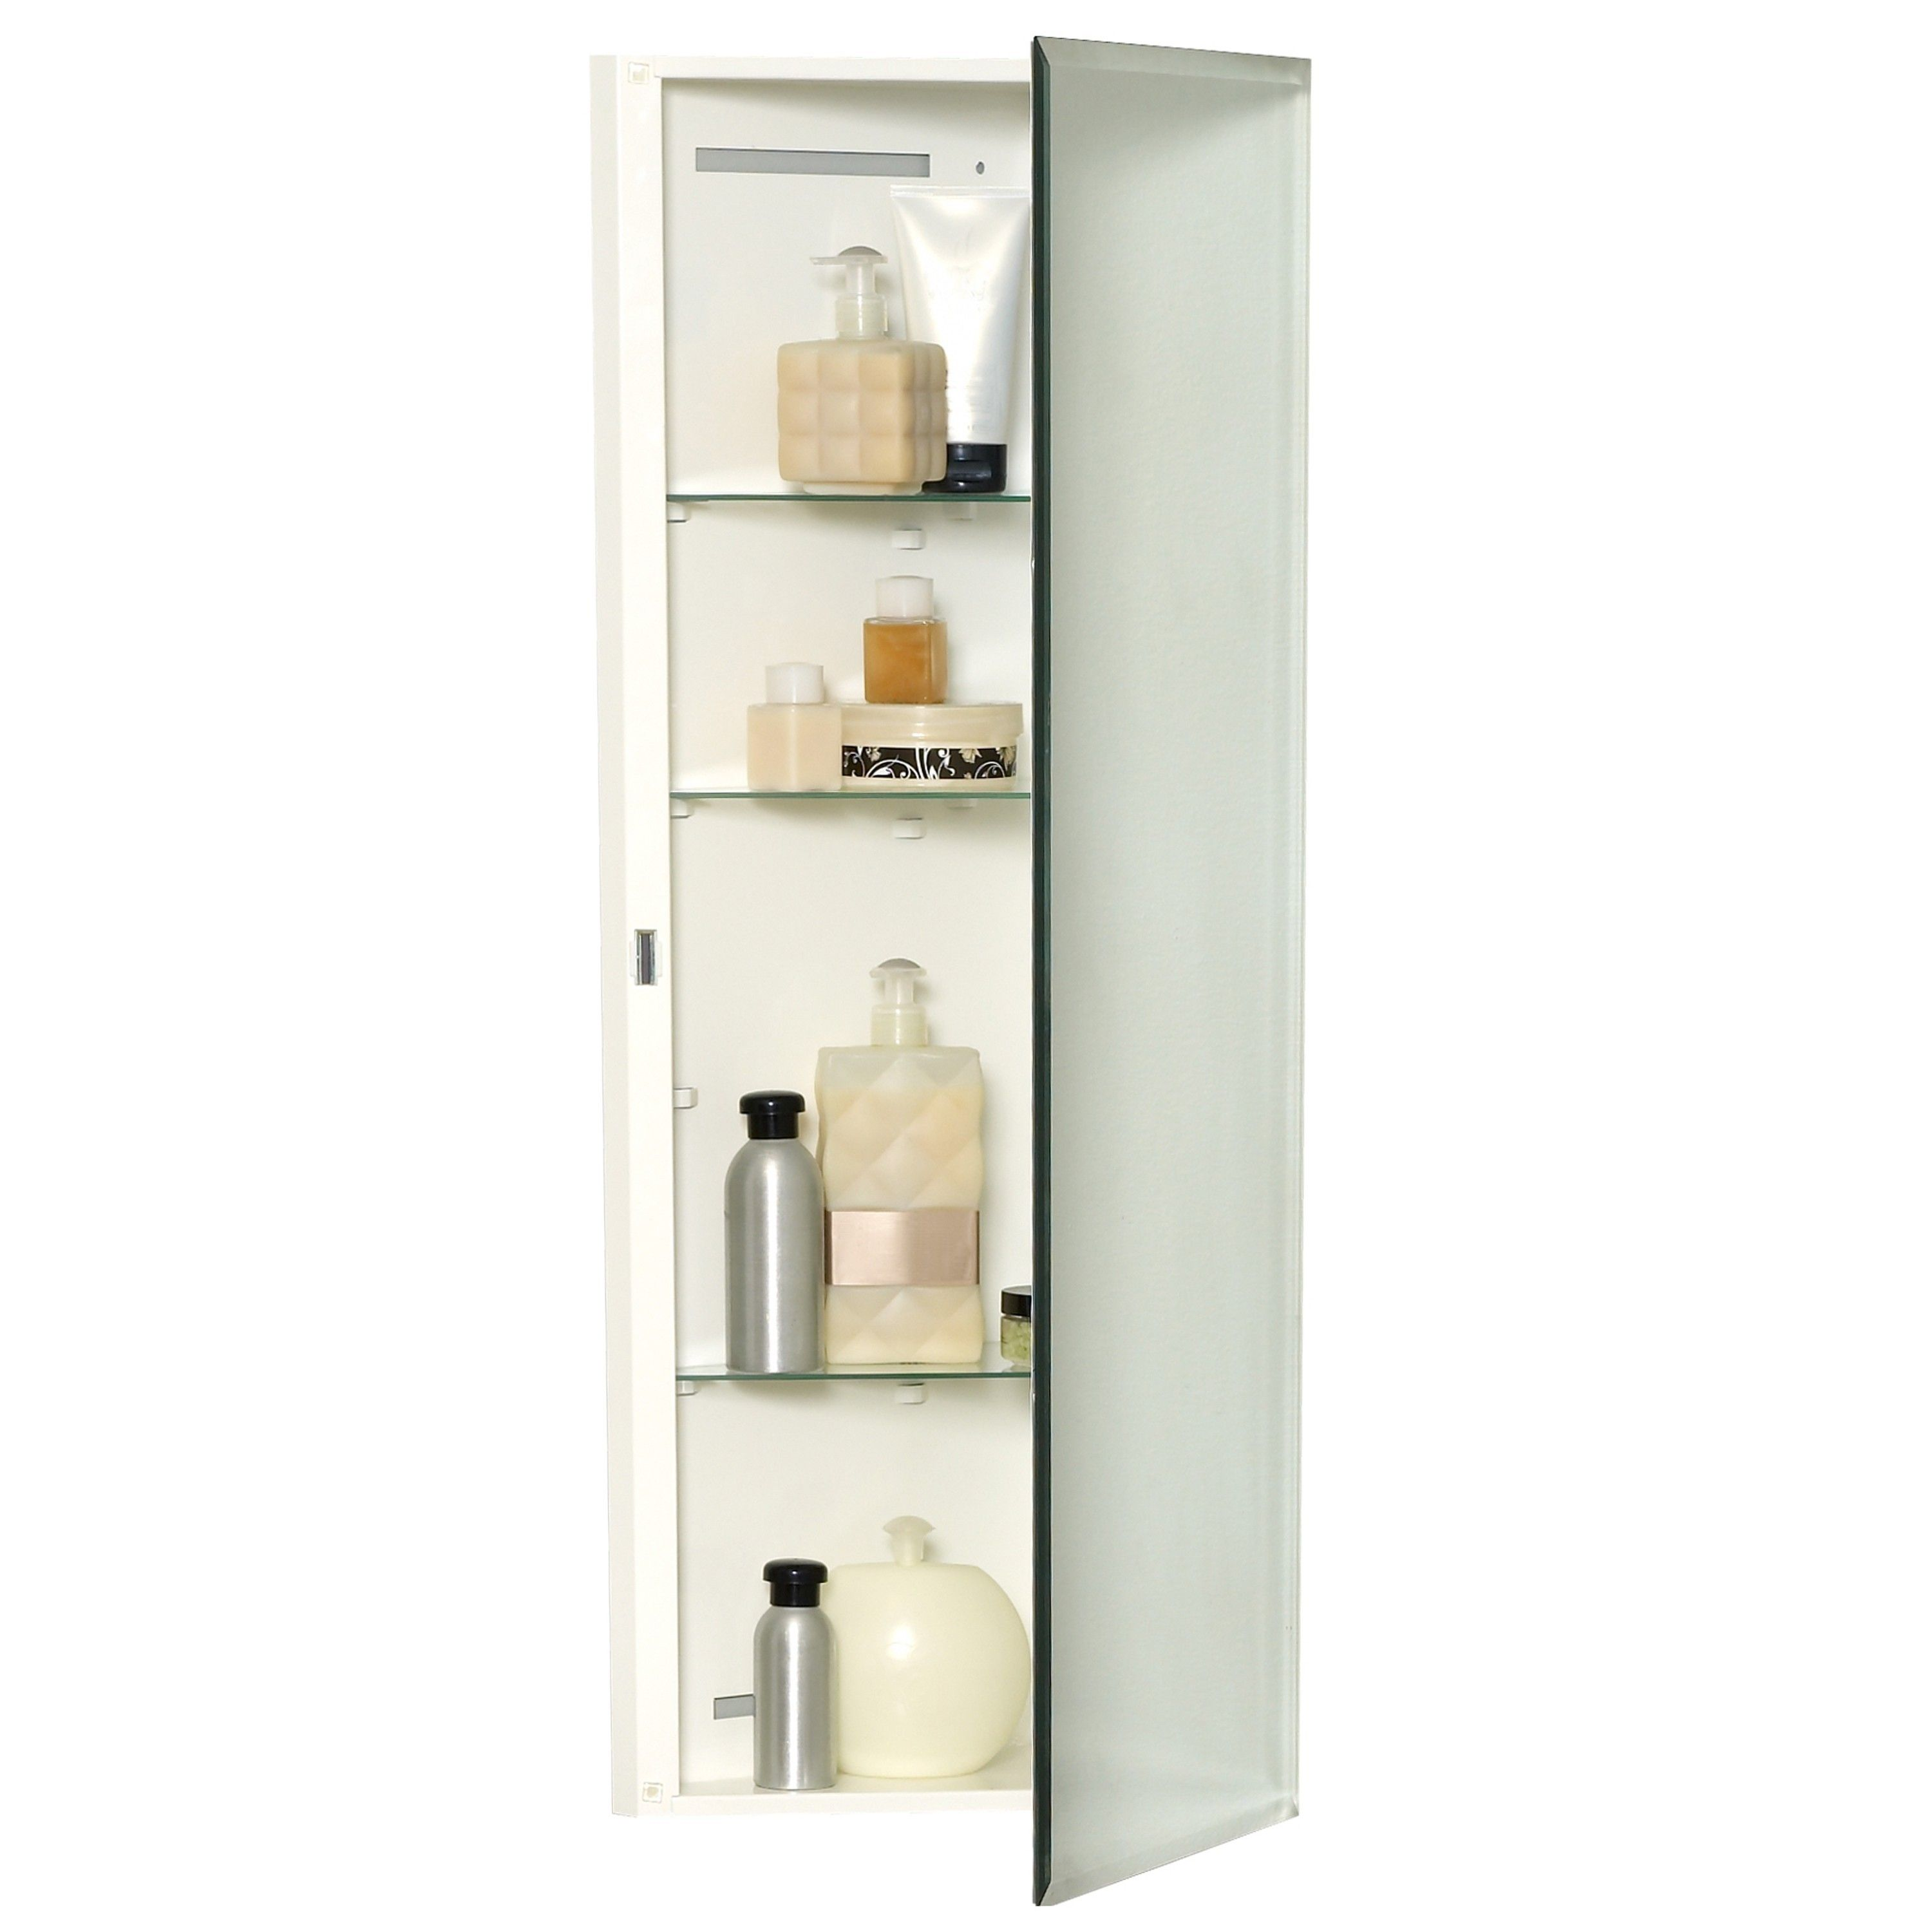 Tall Bathroom Cabinet With Glass Doors Httpbetdaffaires